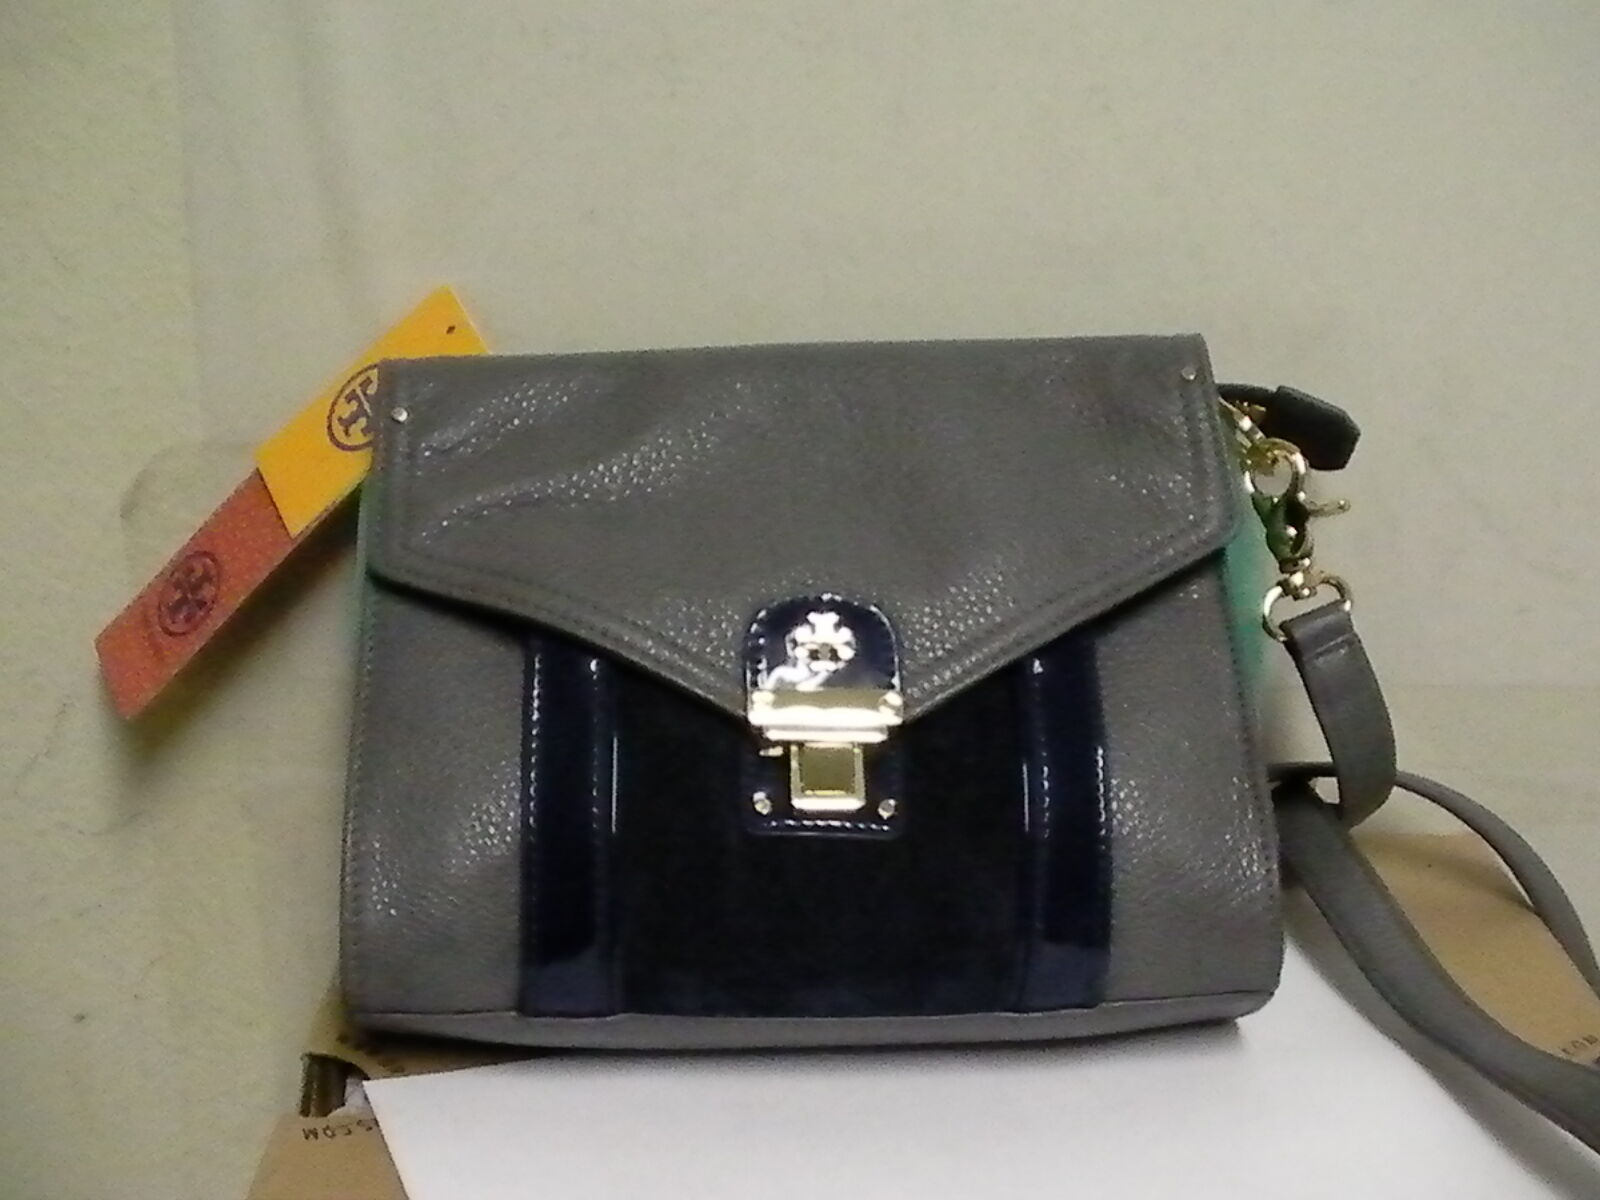 Primary image for Tory burch women crossbody bag rachel clutch evening sky leather new